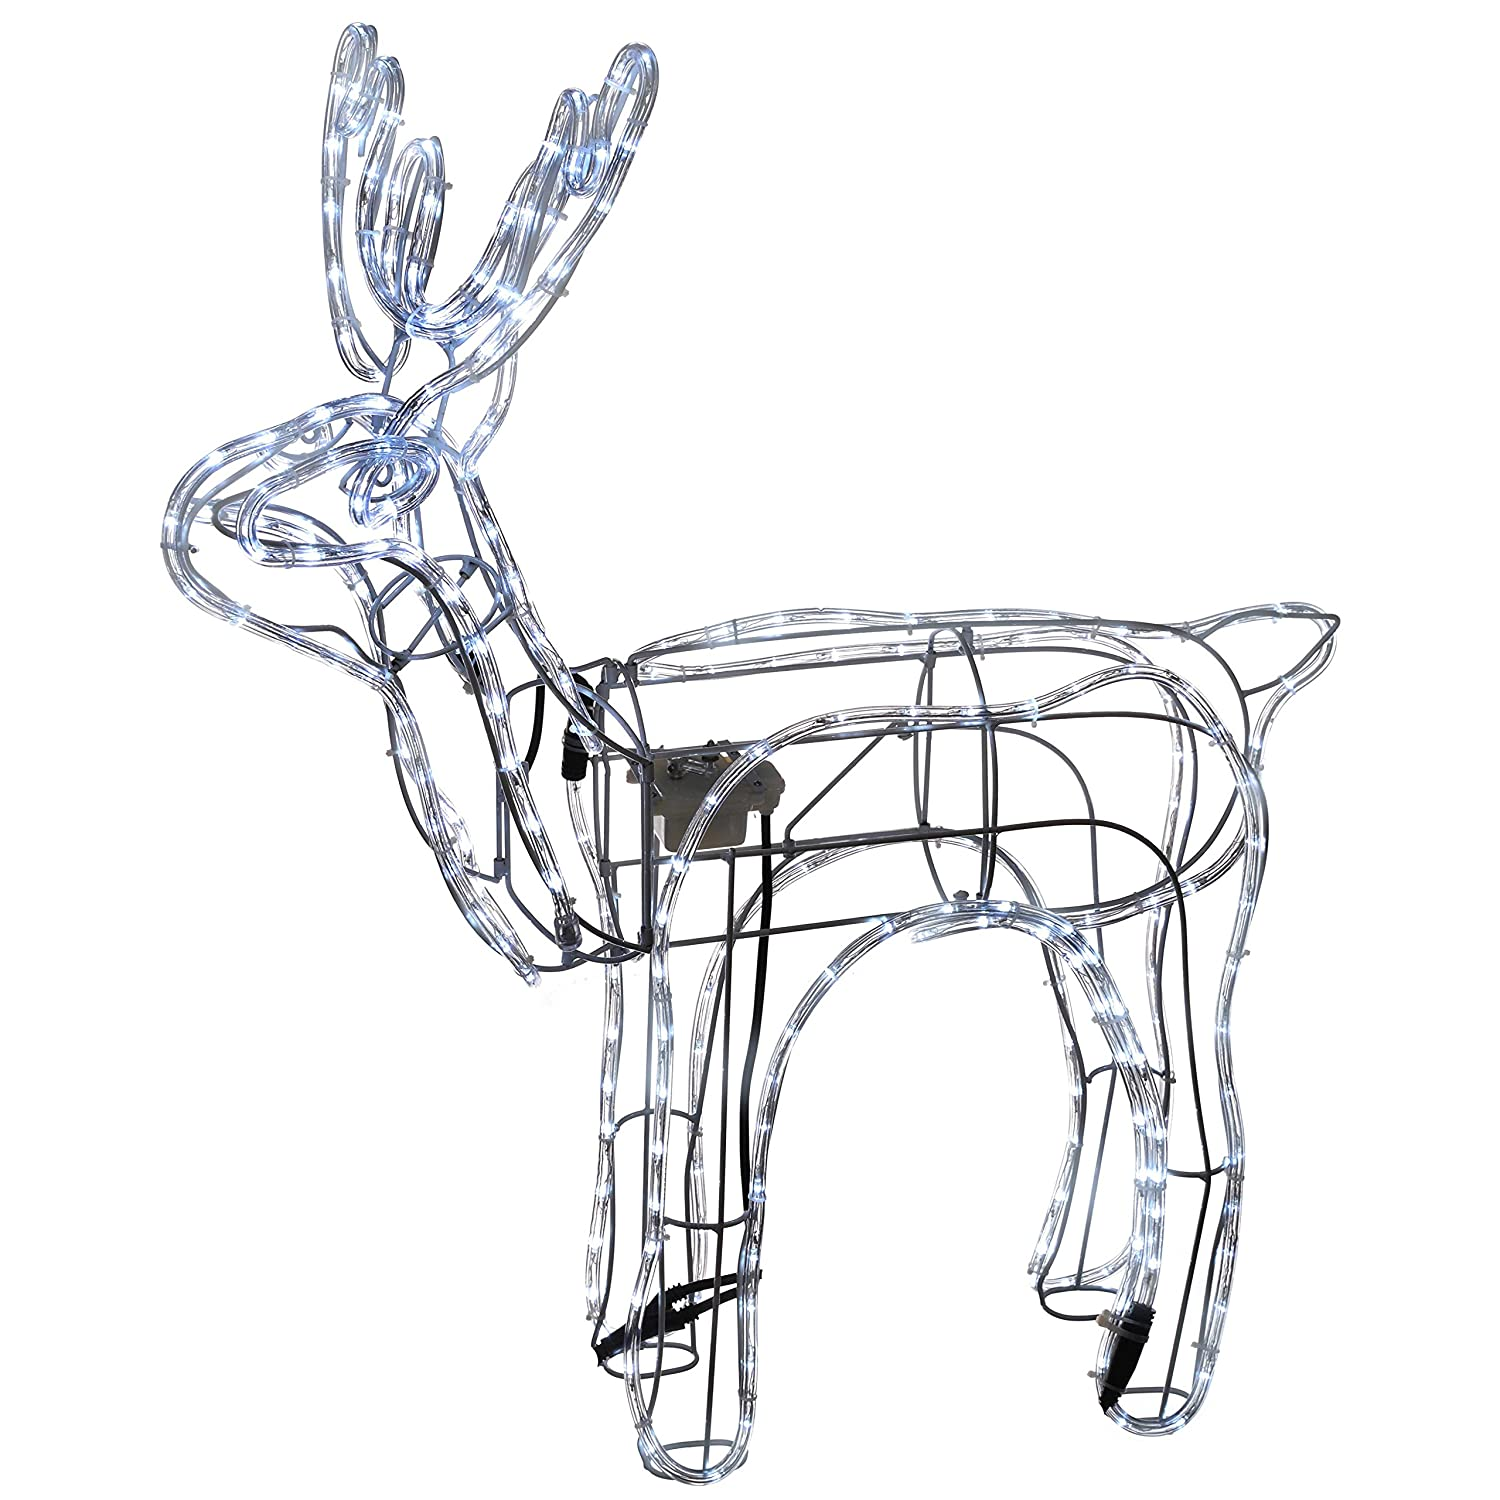 WeRChristmas Christmas Animated LED Rope Light Standing Reindeer with Moving Head, 90 cm - White WRC-6103